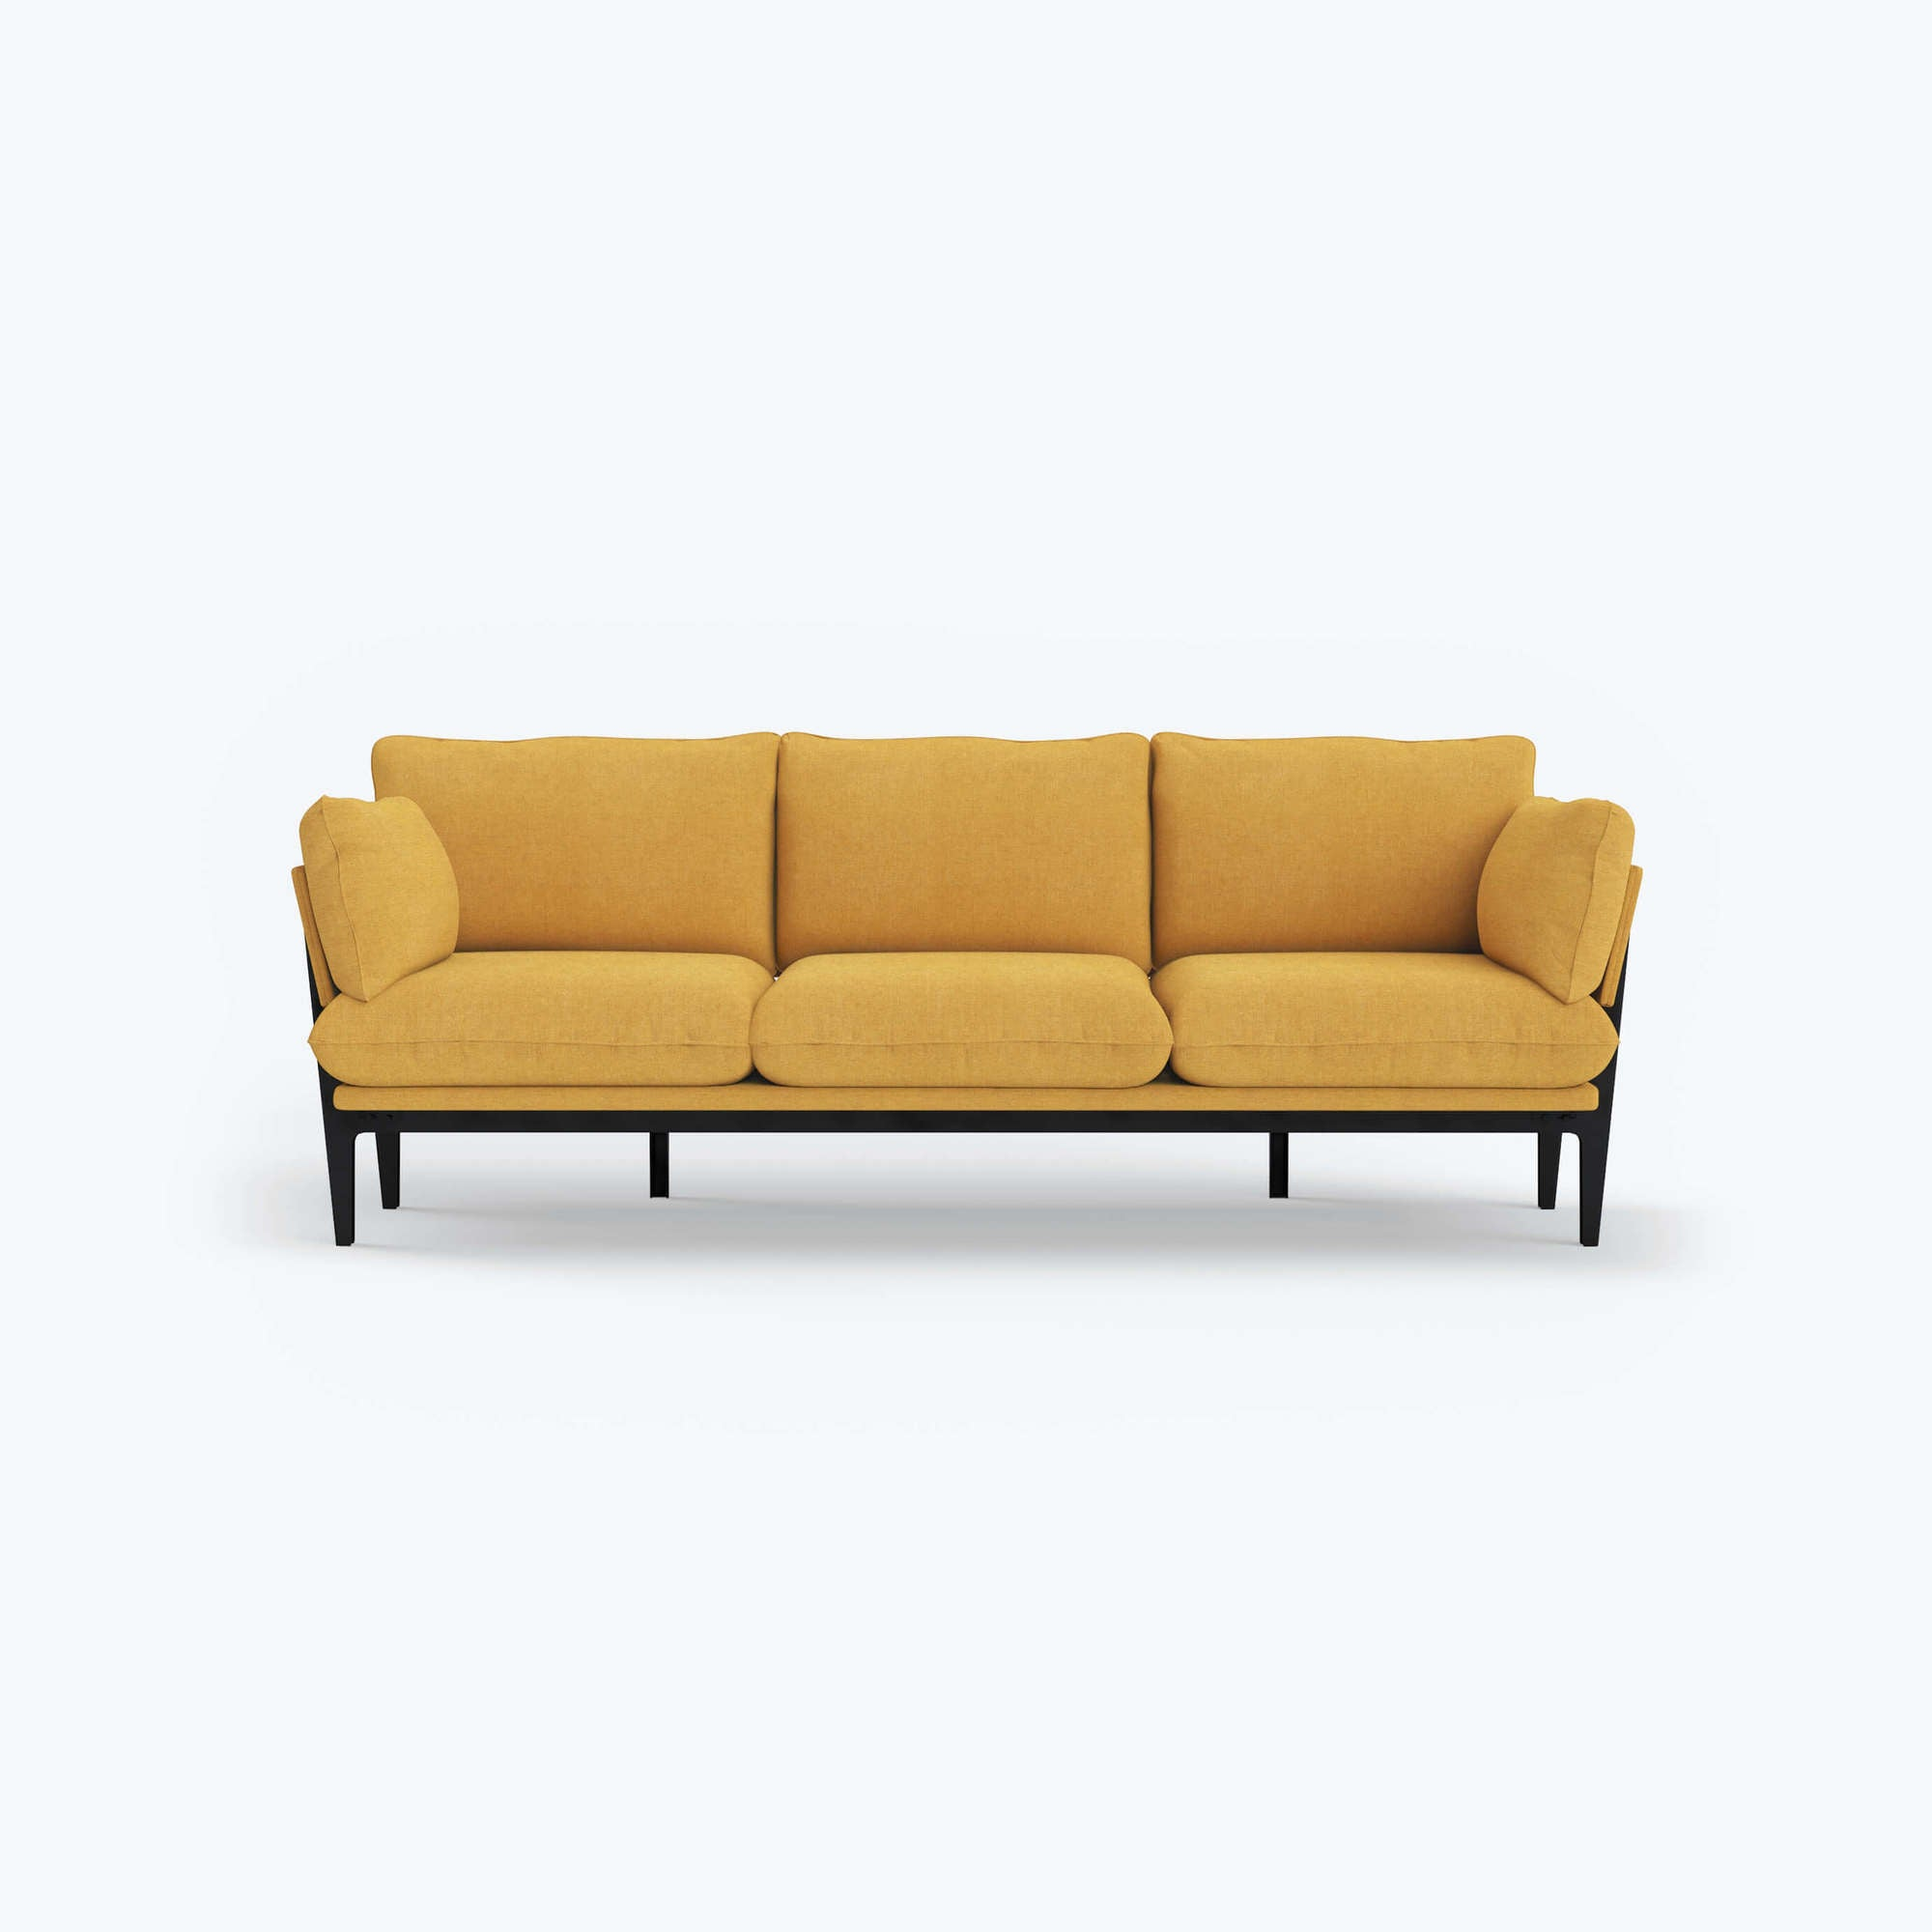 13 Labor Day Home Sales You Can Shop From Your Sofa